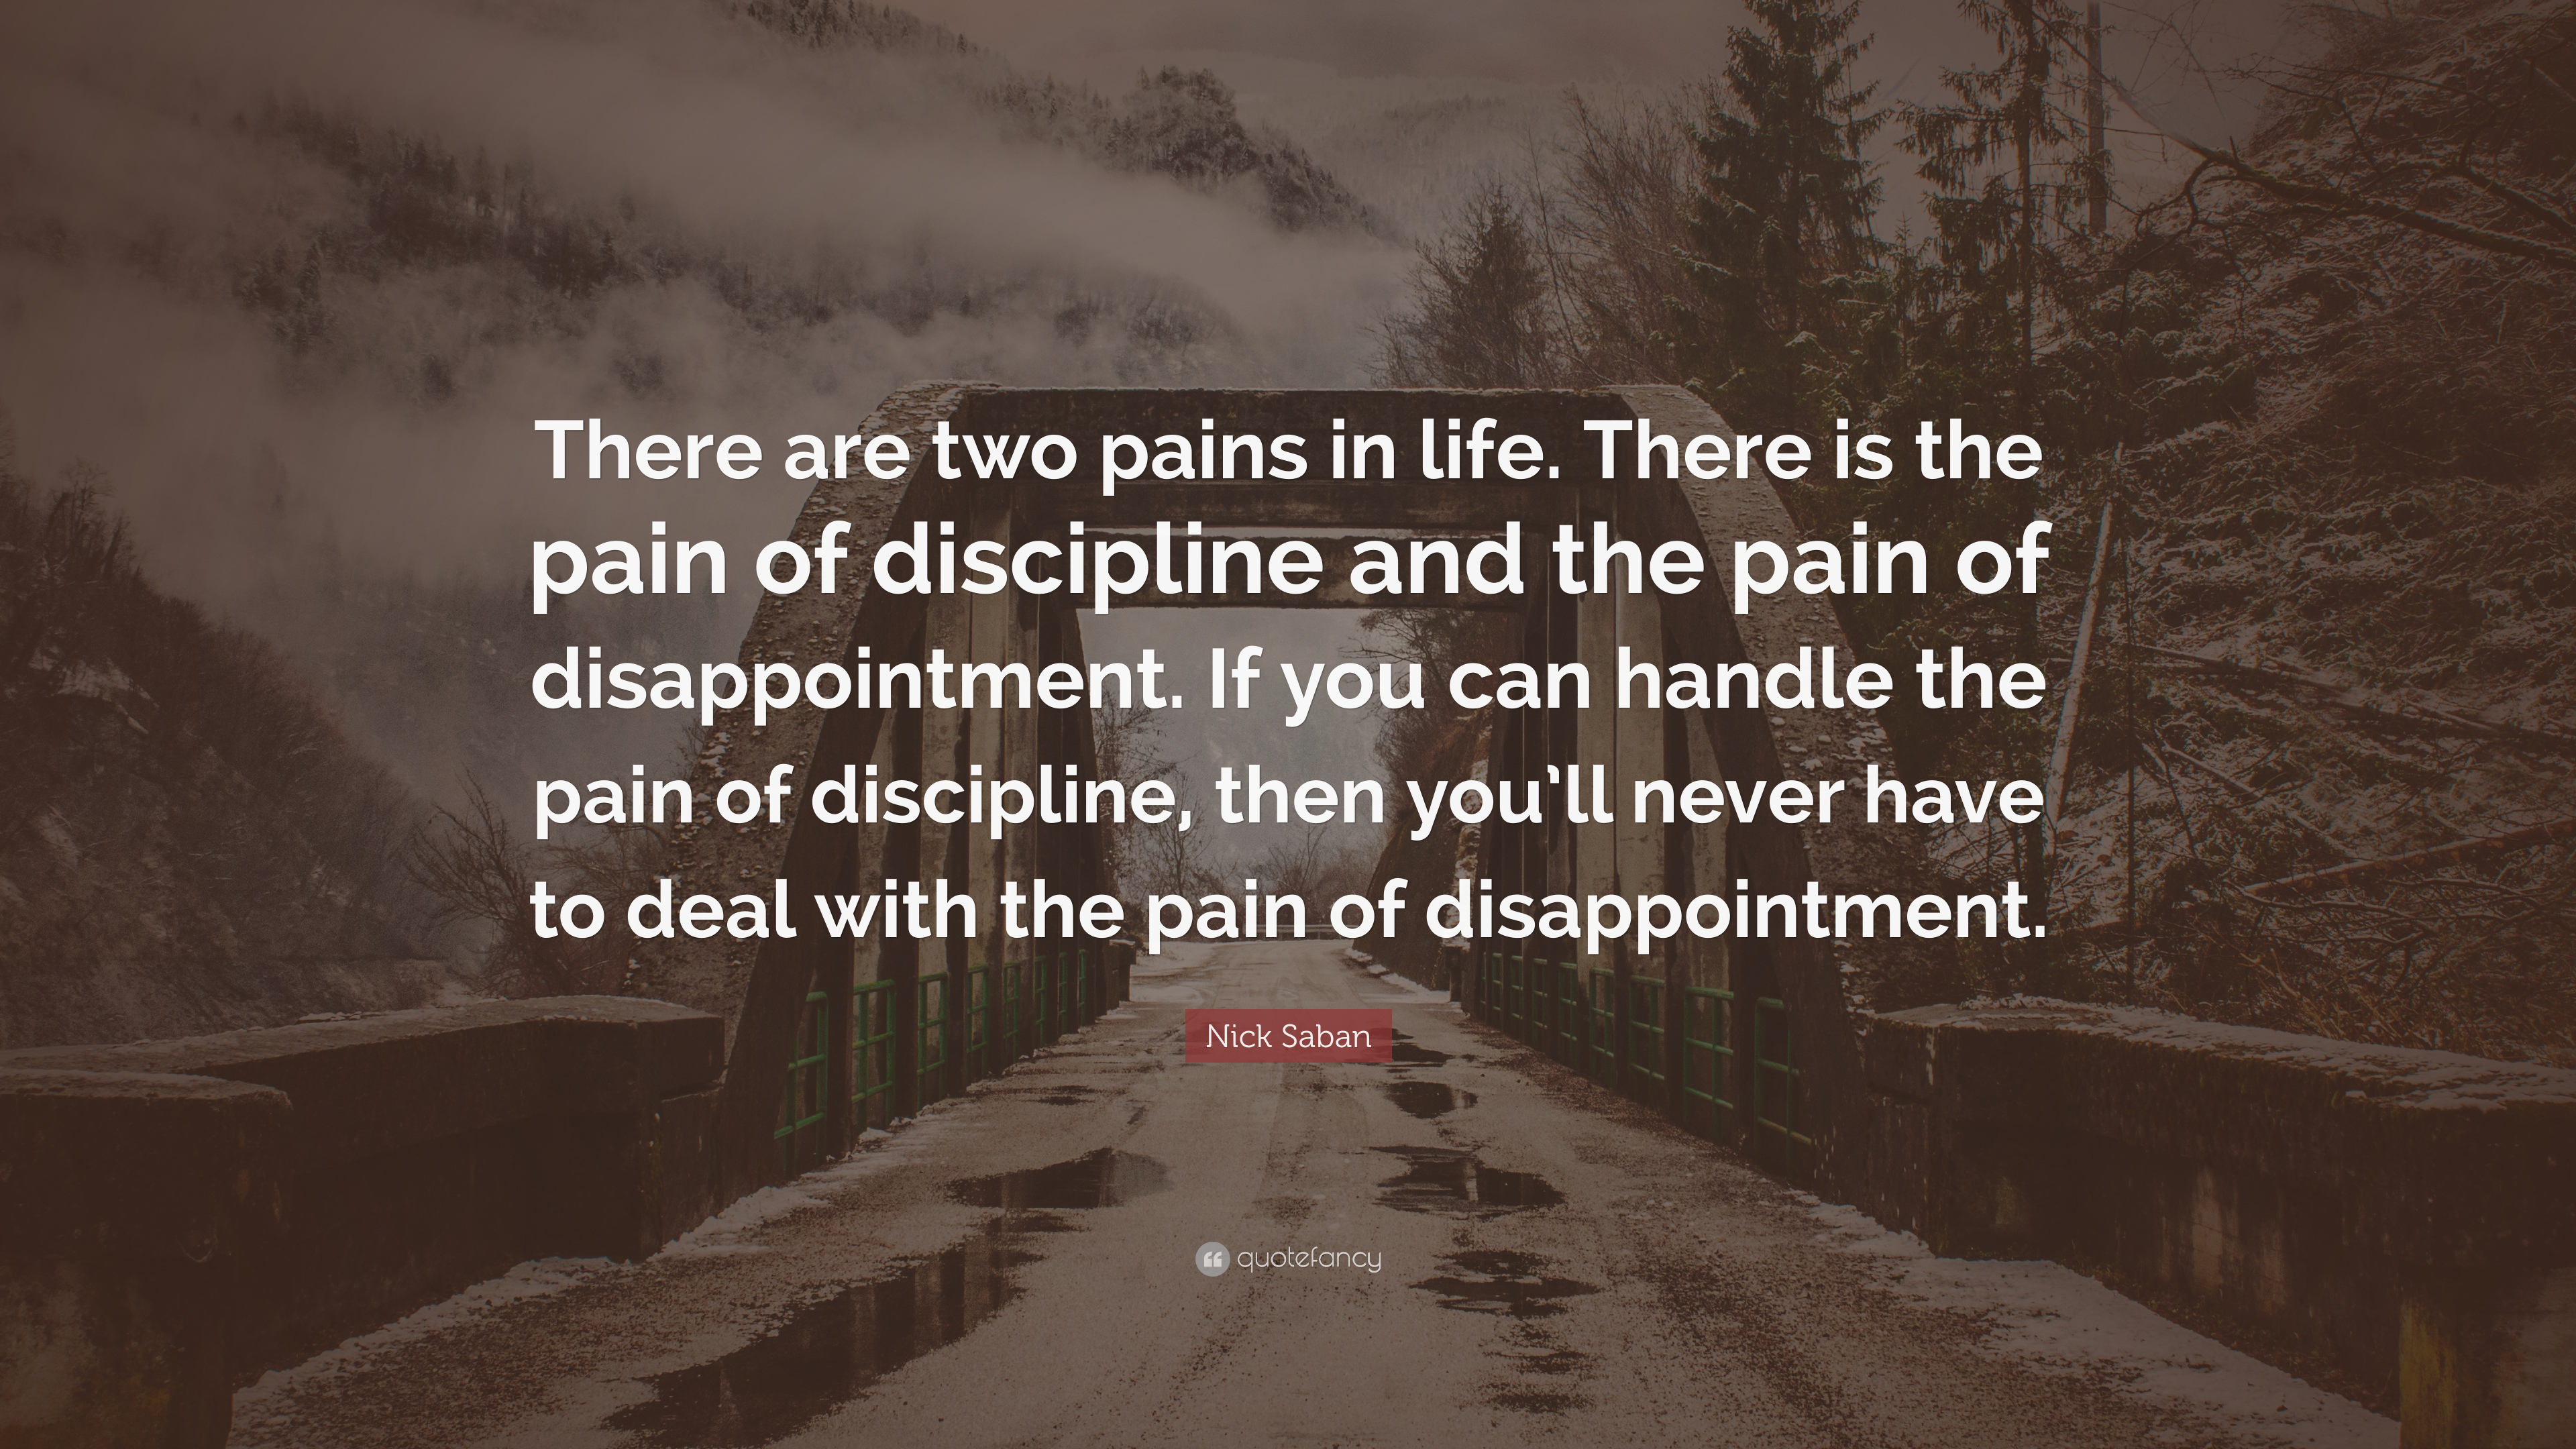 Nick Saban Quote There Are Two Pains In Life There Is The Pain Of